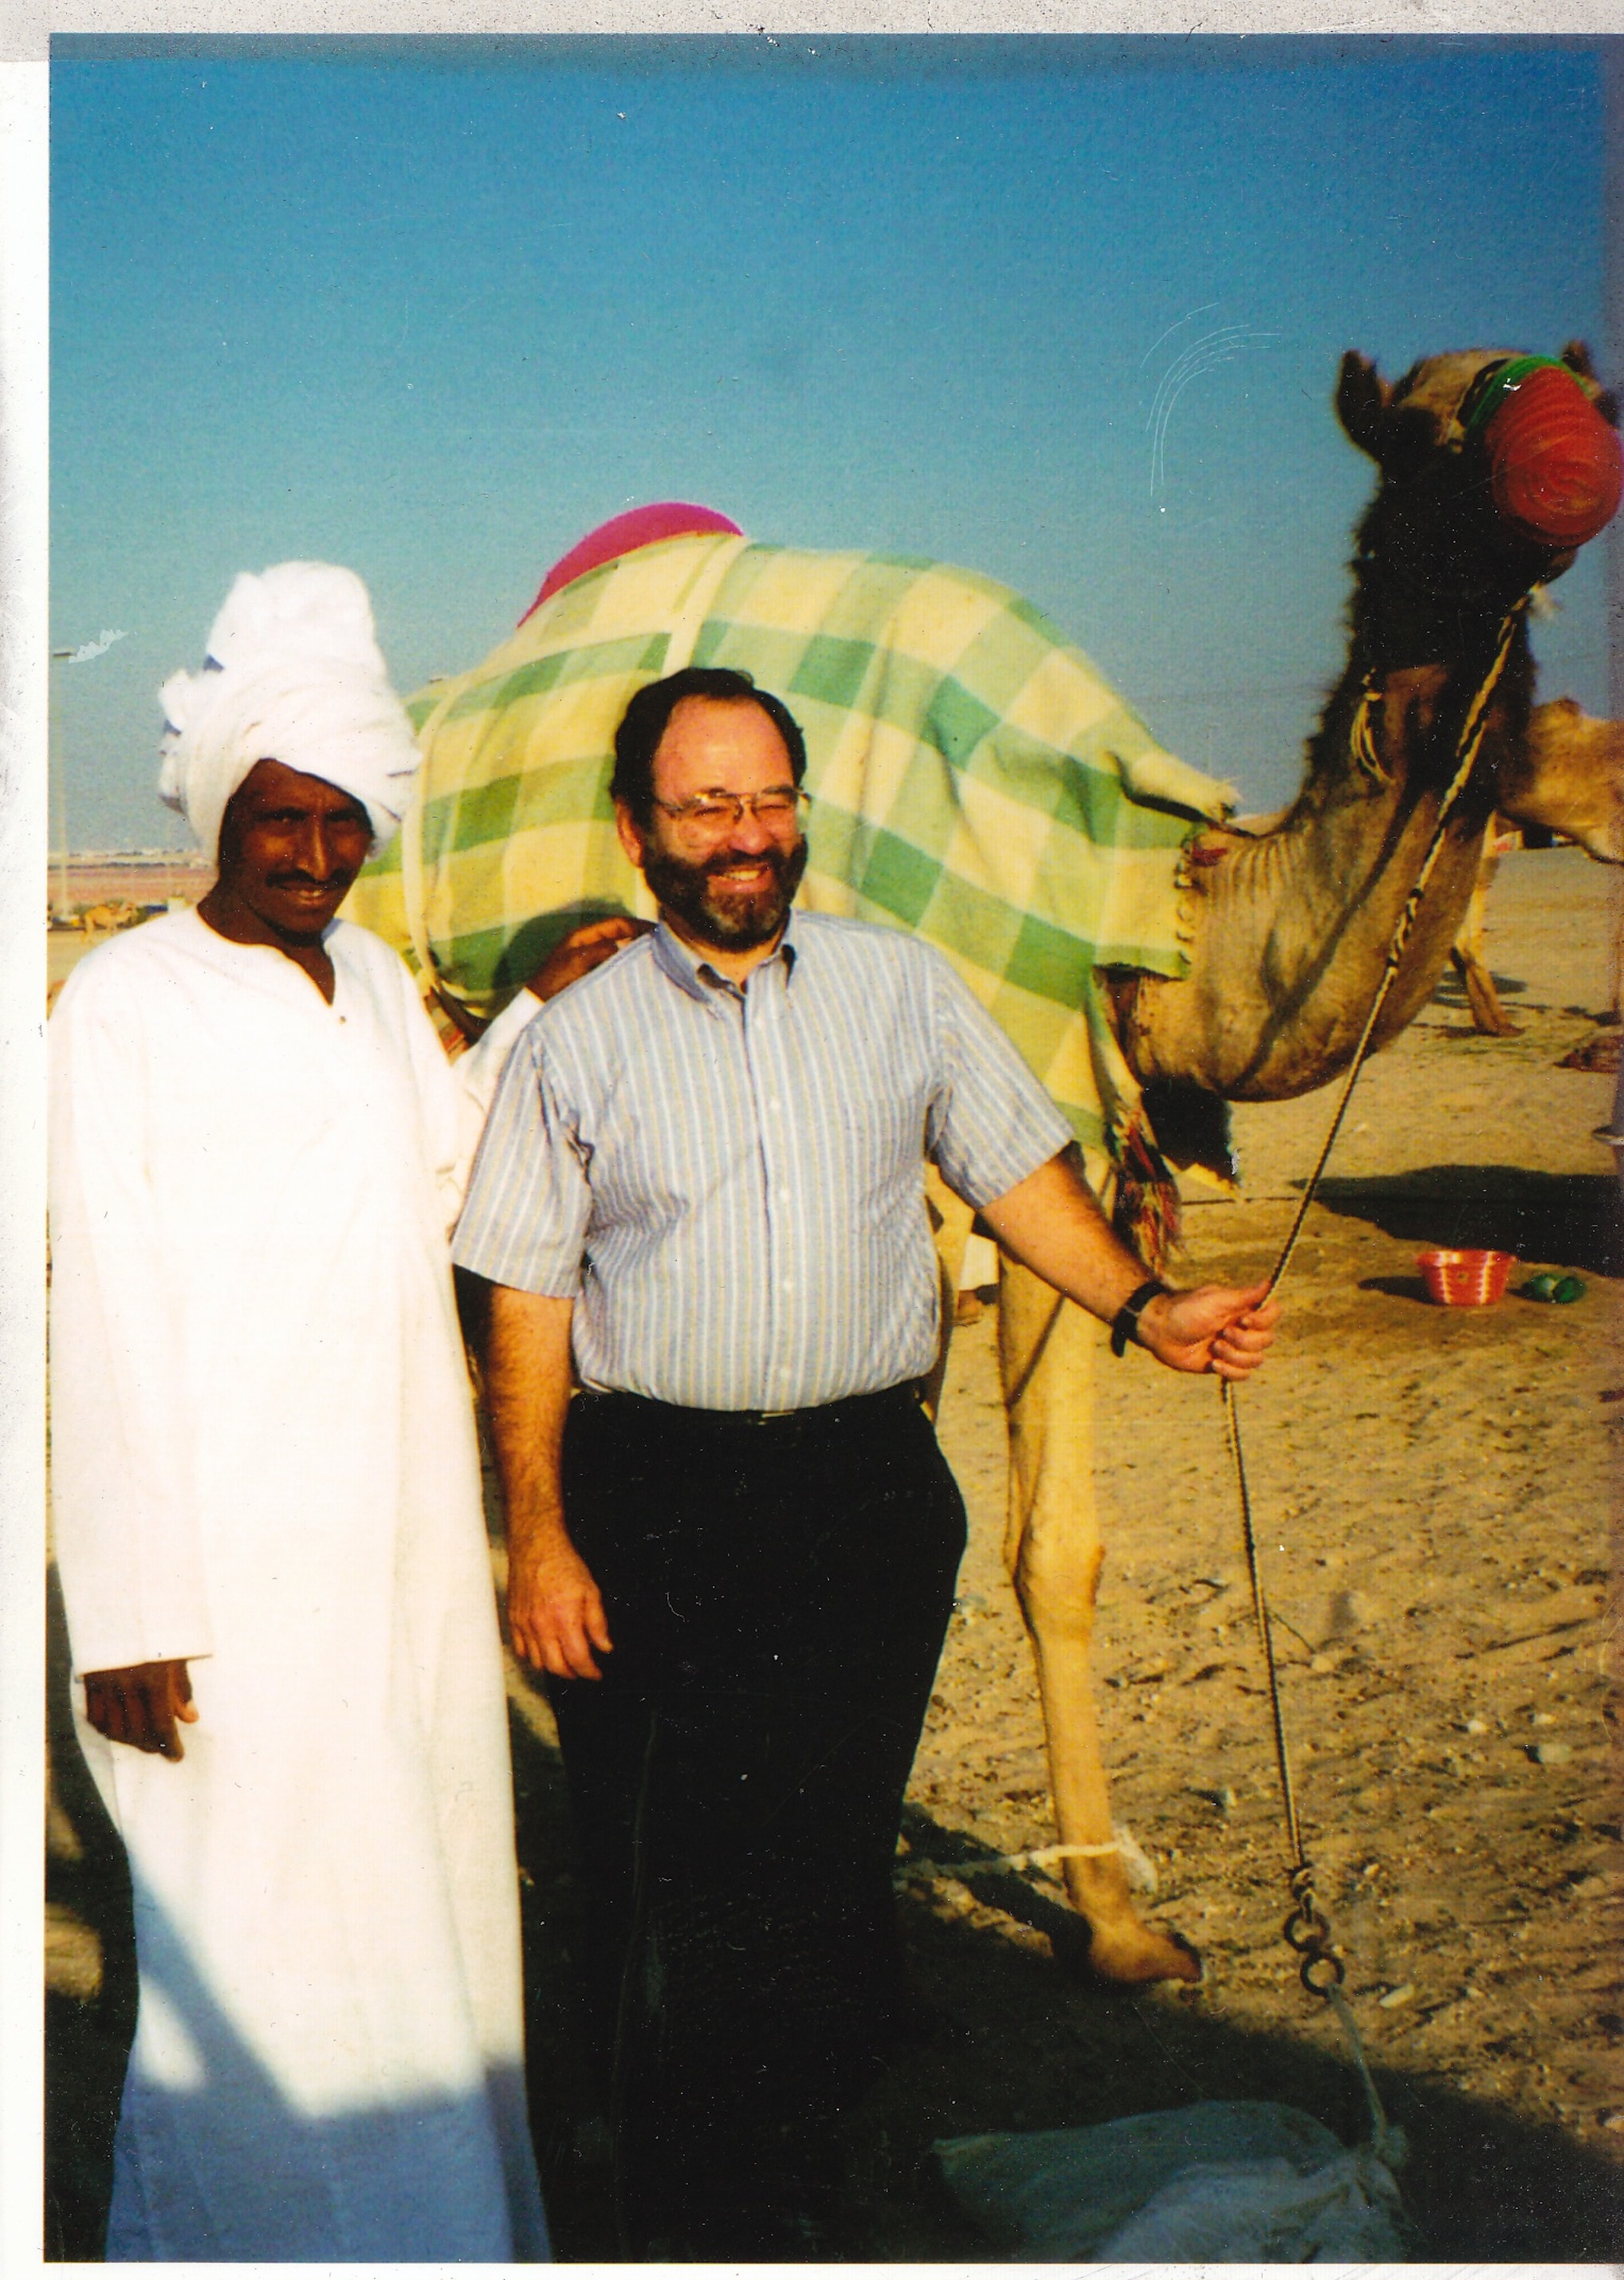 2. Kroll in the Arabian desert between Abu Dhabi and Dubai,2001